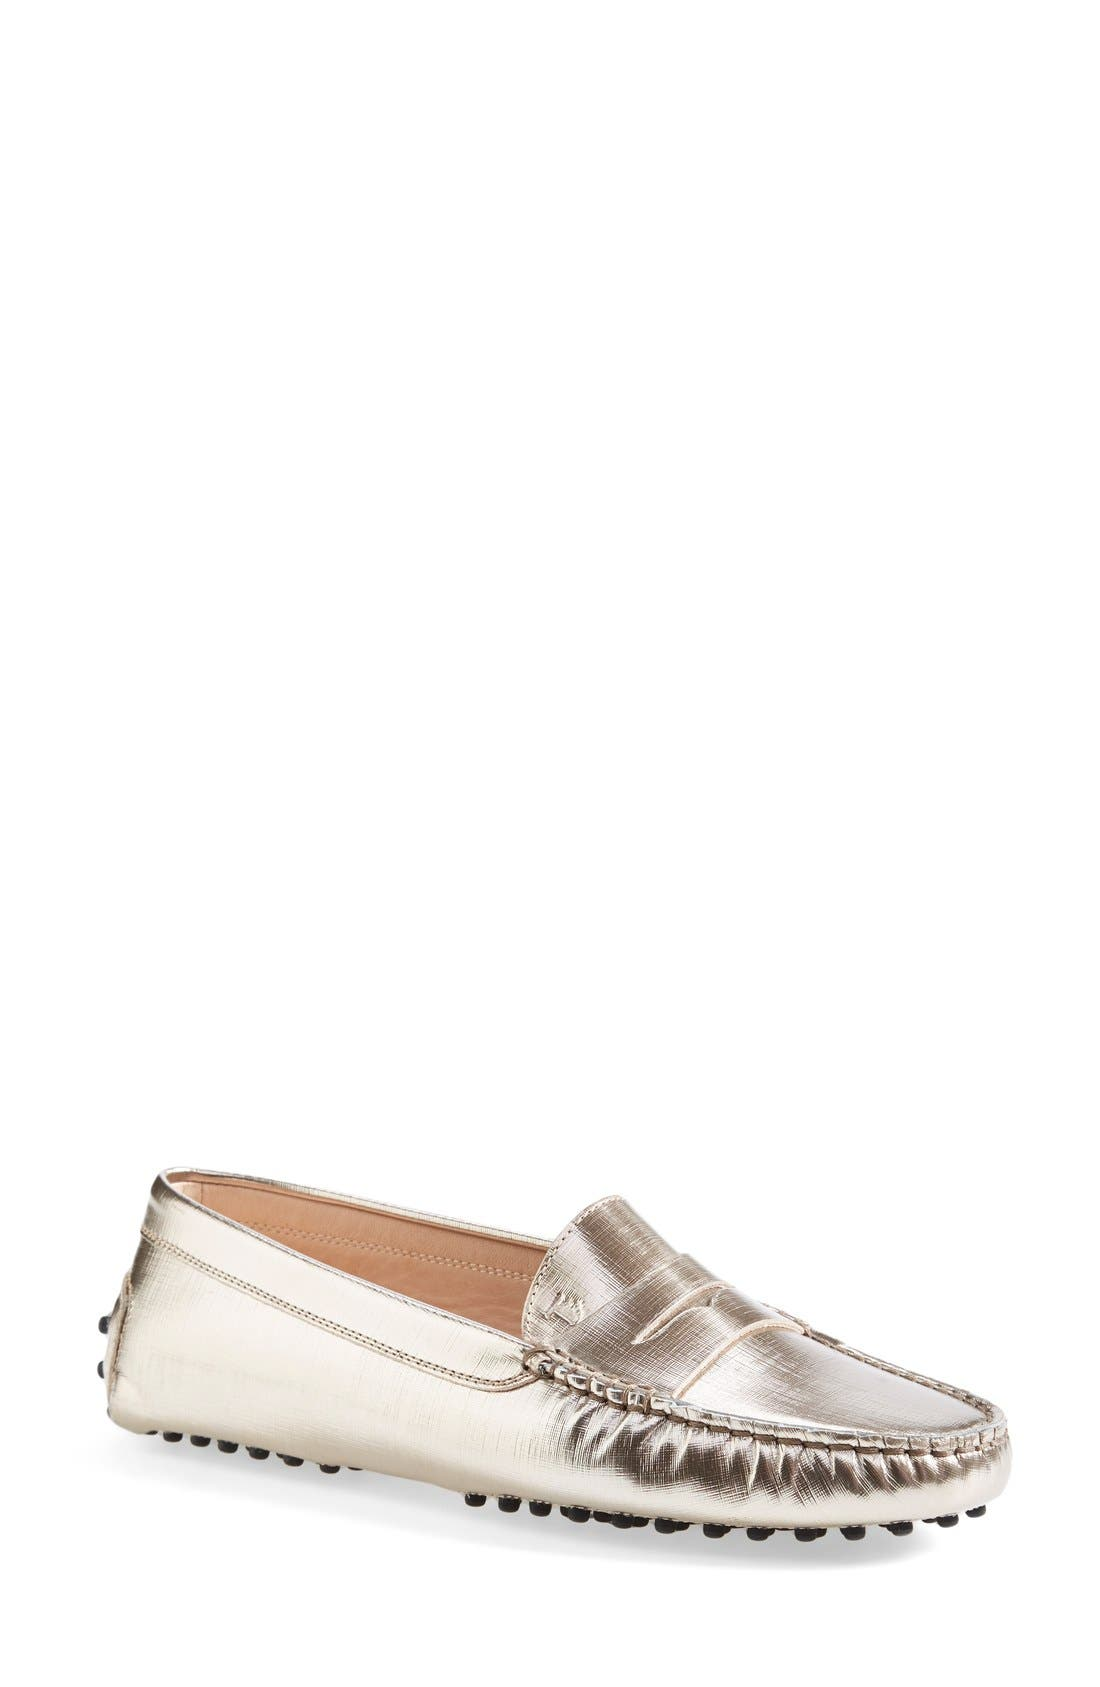 Alternate Image 1 Selected - Tod's 'Gommini' Metallic Leather Penny Loafer